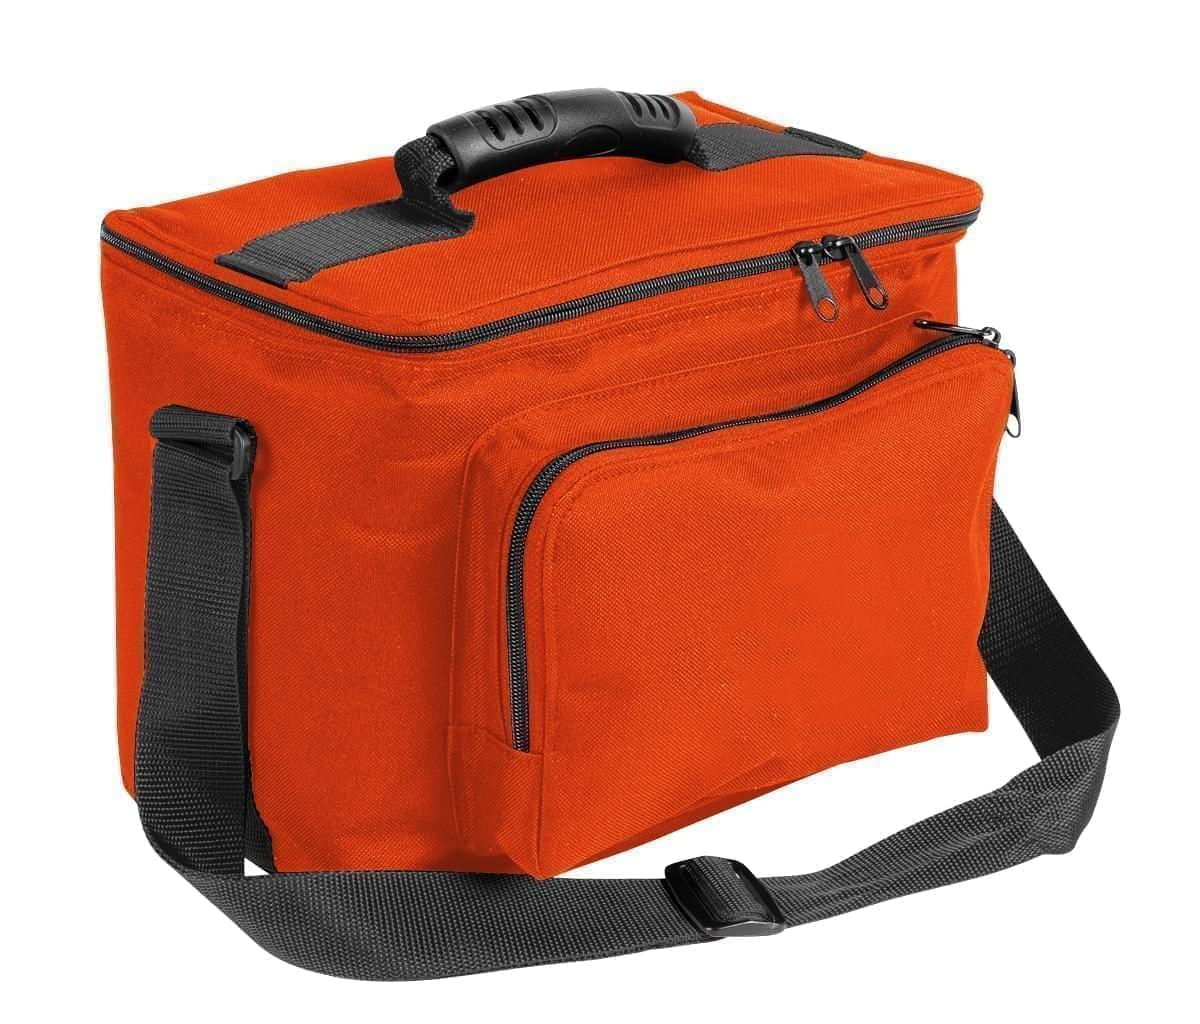 USA Made Nylon Poly Lunch Coolers, Orange-Black, 11001161-AXR